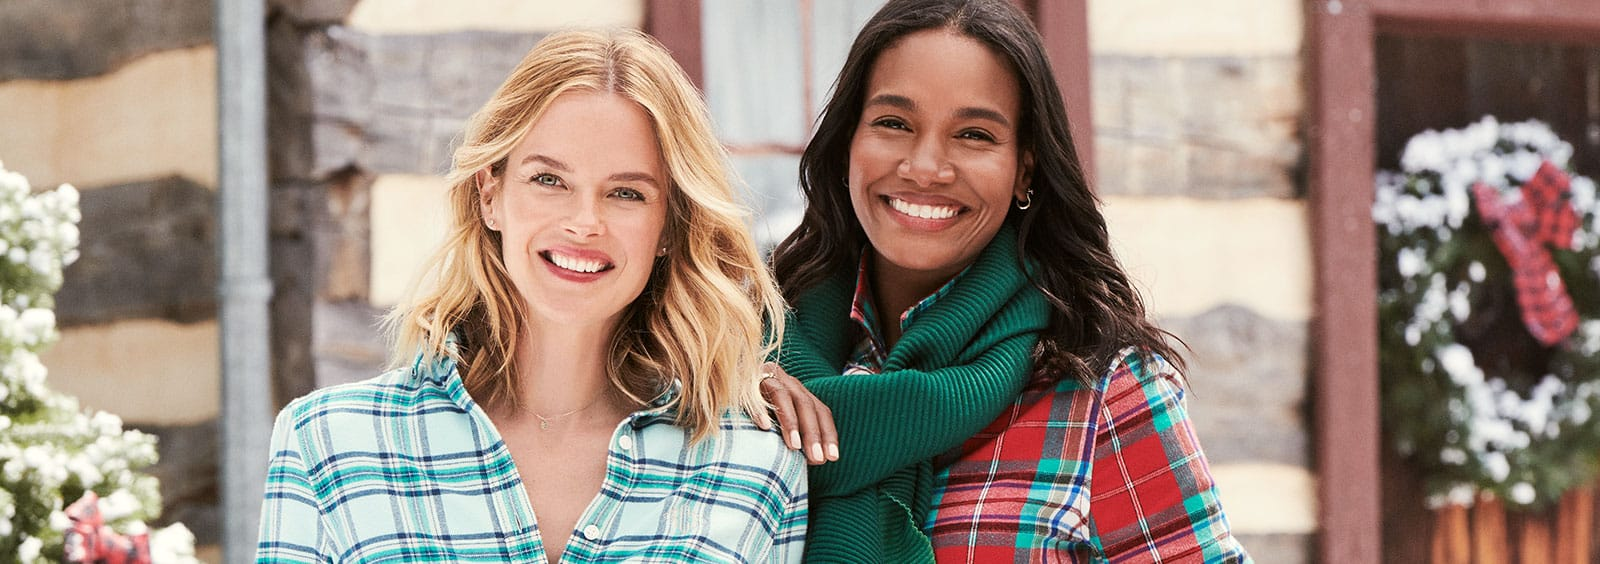 Complete Your Wardrobe with Stylish Yet Cozy Flannel